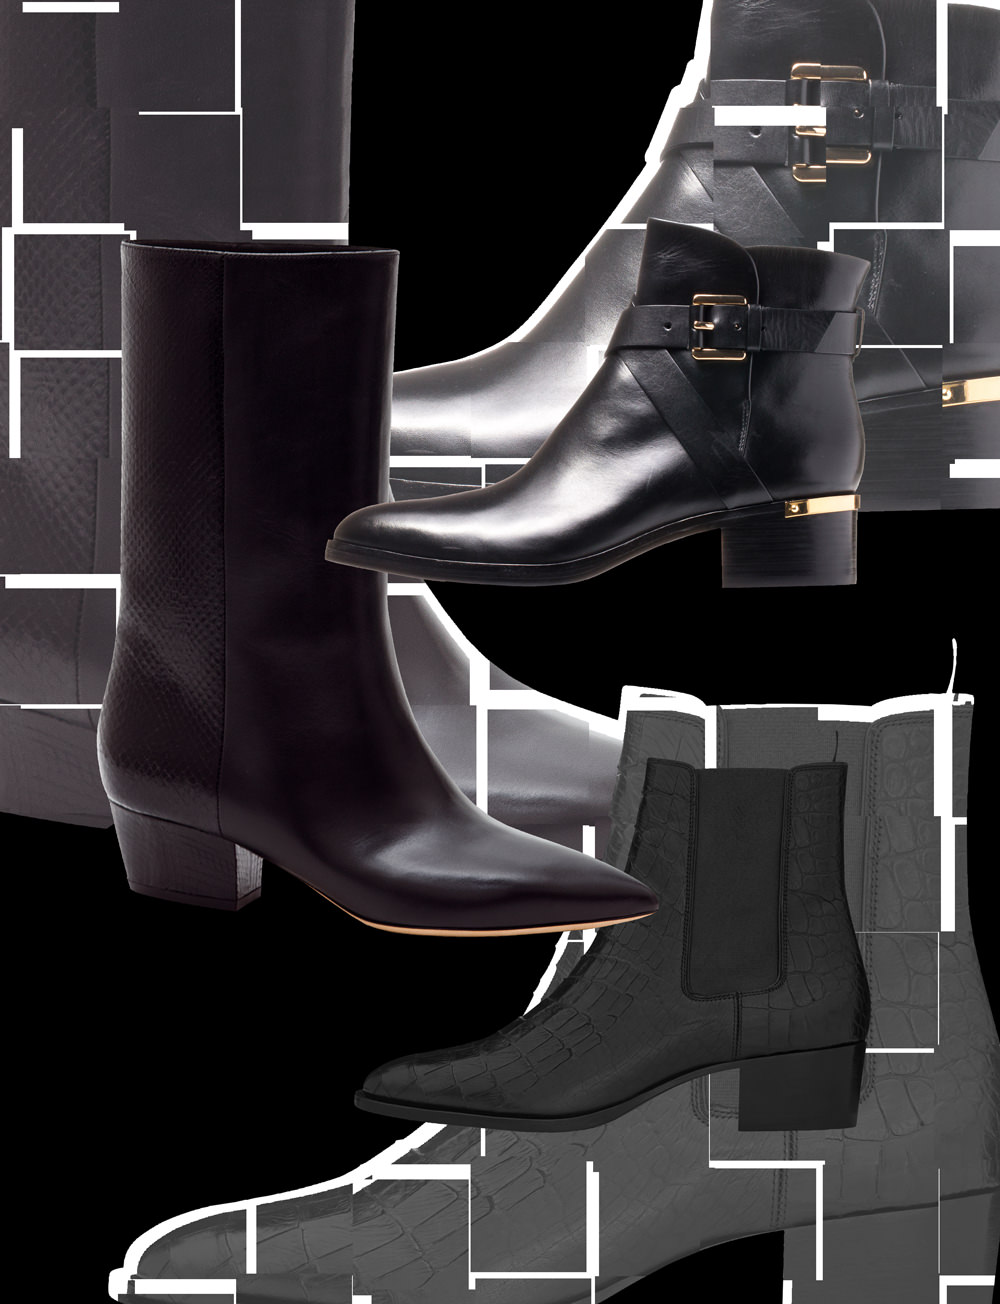 The rock'n'roll flat boots